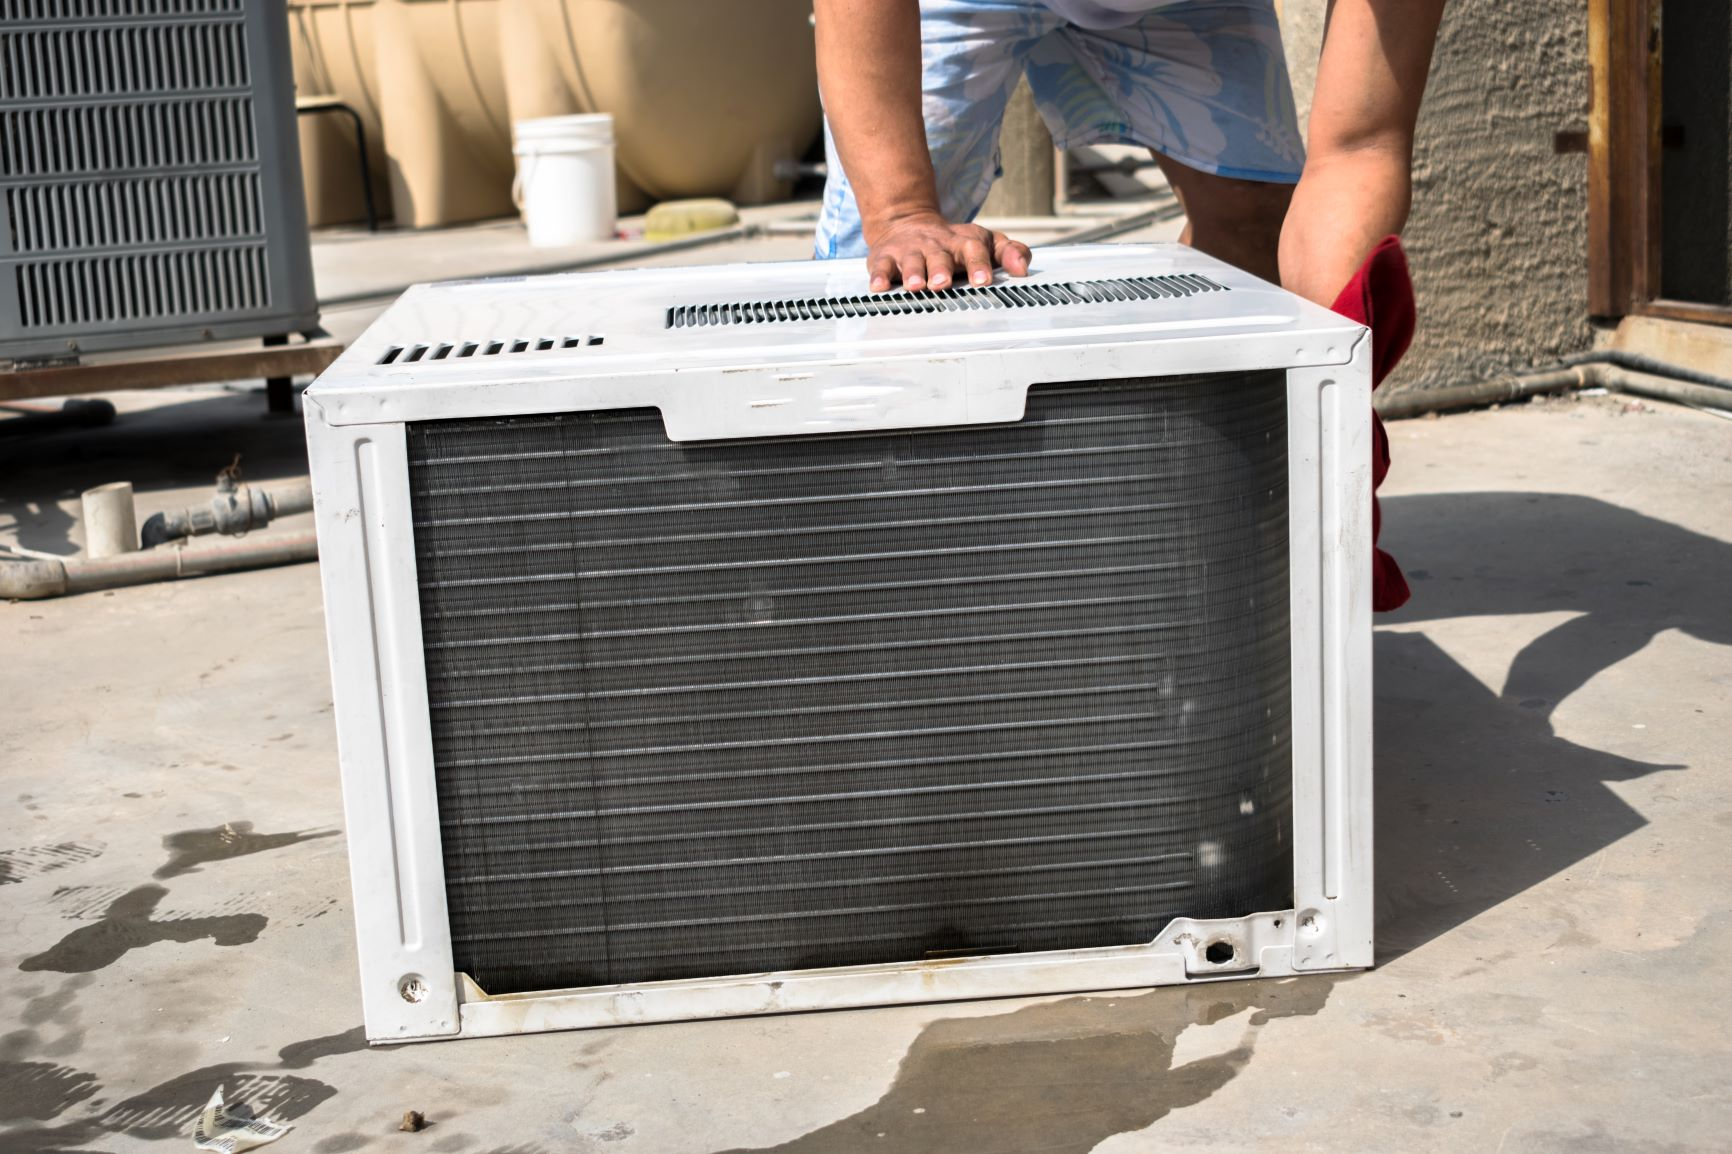 Window Air Conditioners – Don't Assume You Can Just Plug Them In!